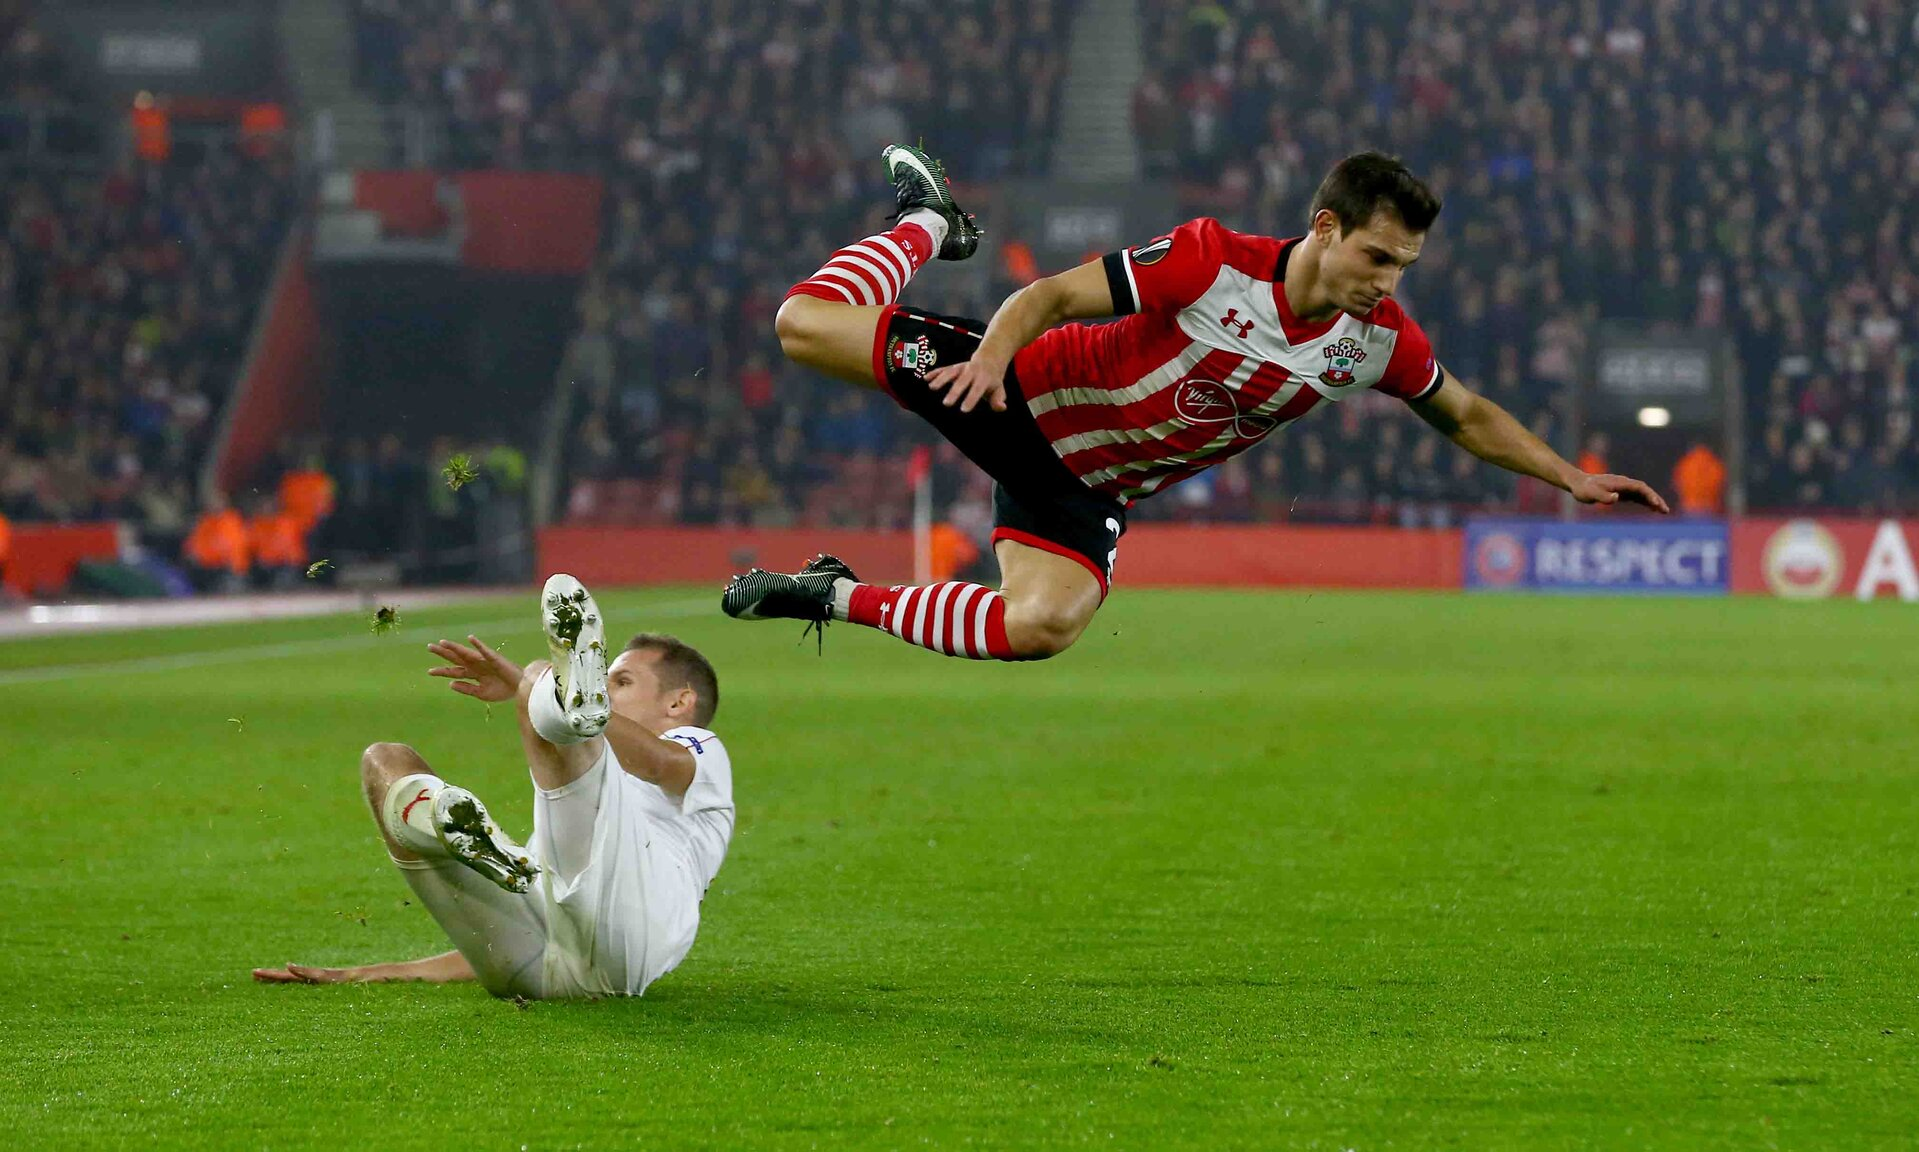 Cedric is sent flying during the UEFA Europa League match between Southampton and Hapoel Be'er Sheva F.C. at St Mary's Stadium, Southampton, England on 8 December 2016. Photo by Matt Watson/SFC/Digital South.